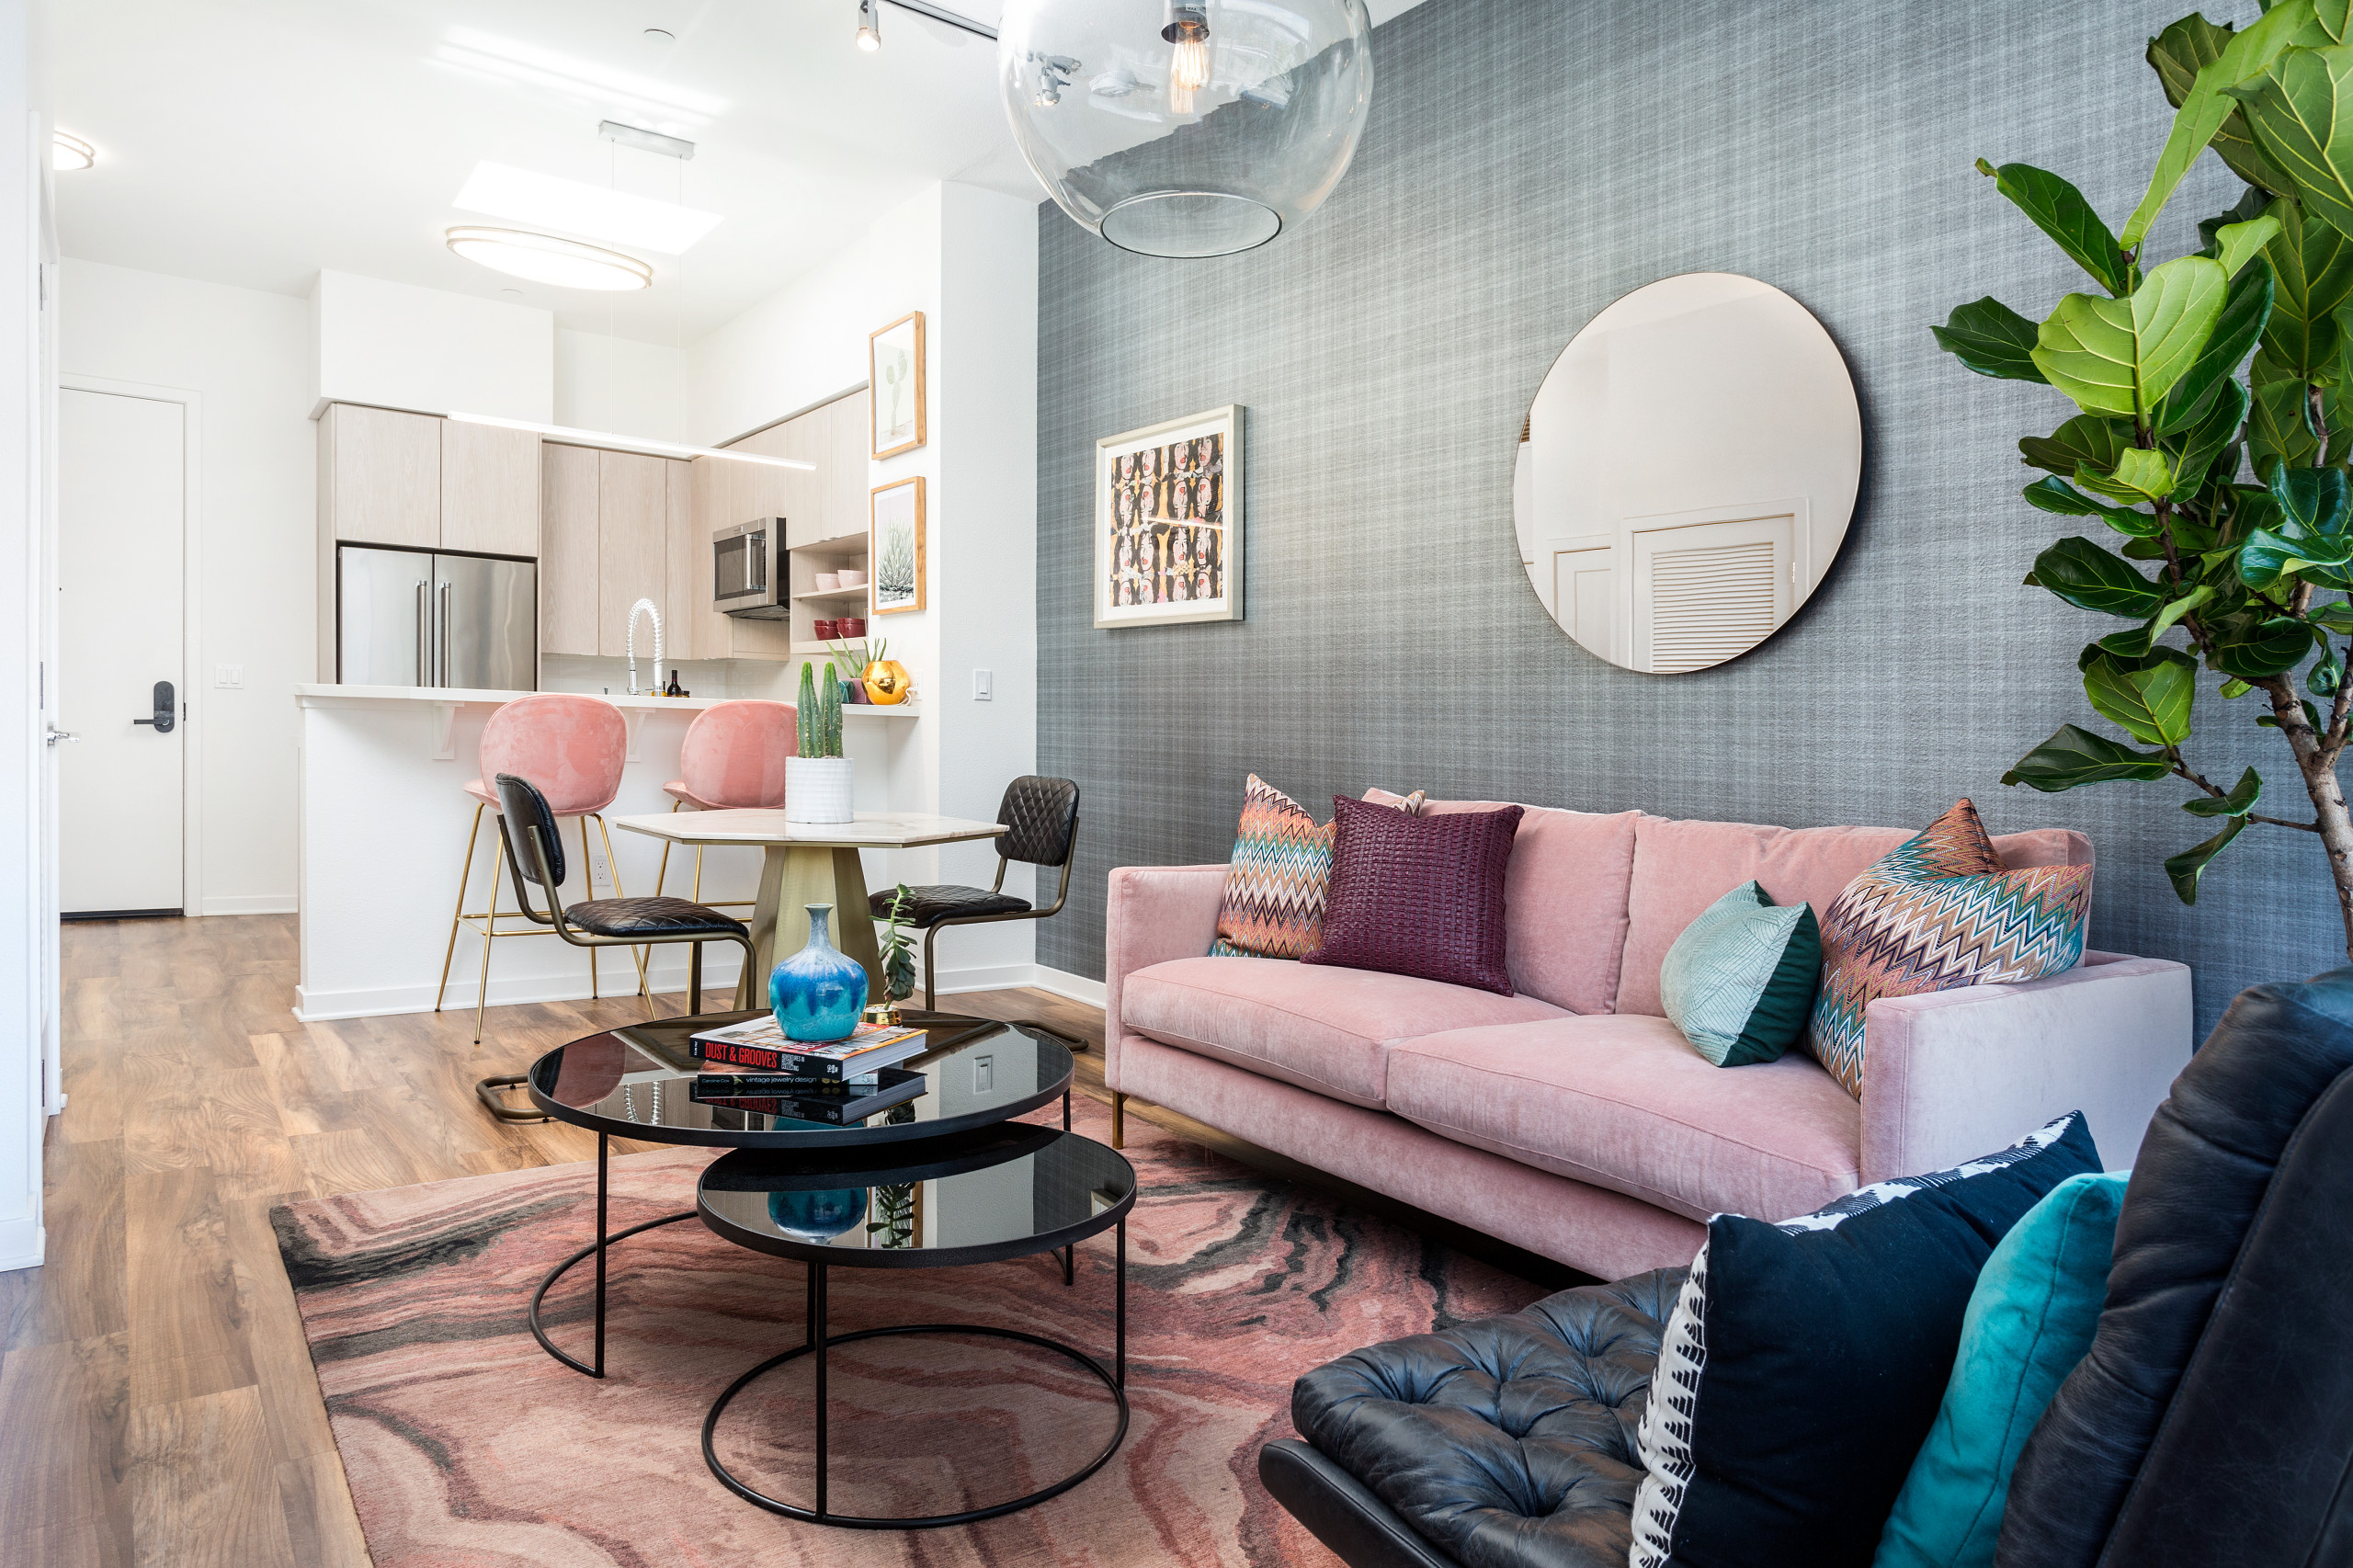 75 Beautiful Wallpaper Living Room Pictures Ideas January 2021 Houzz